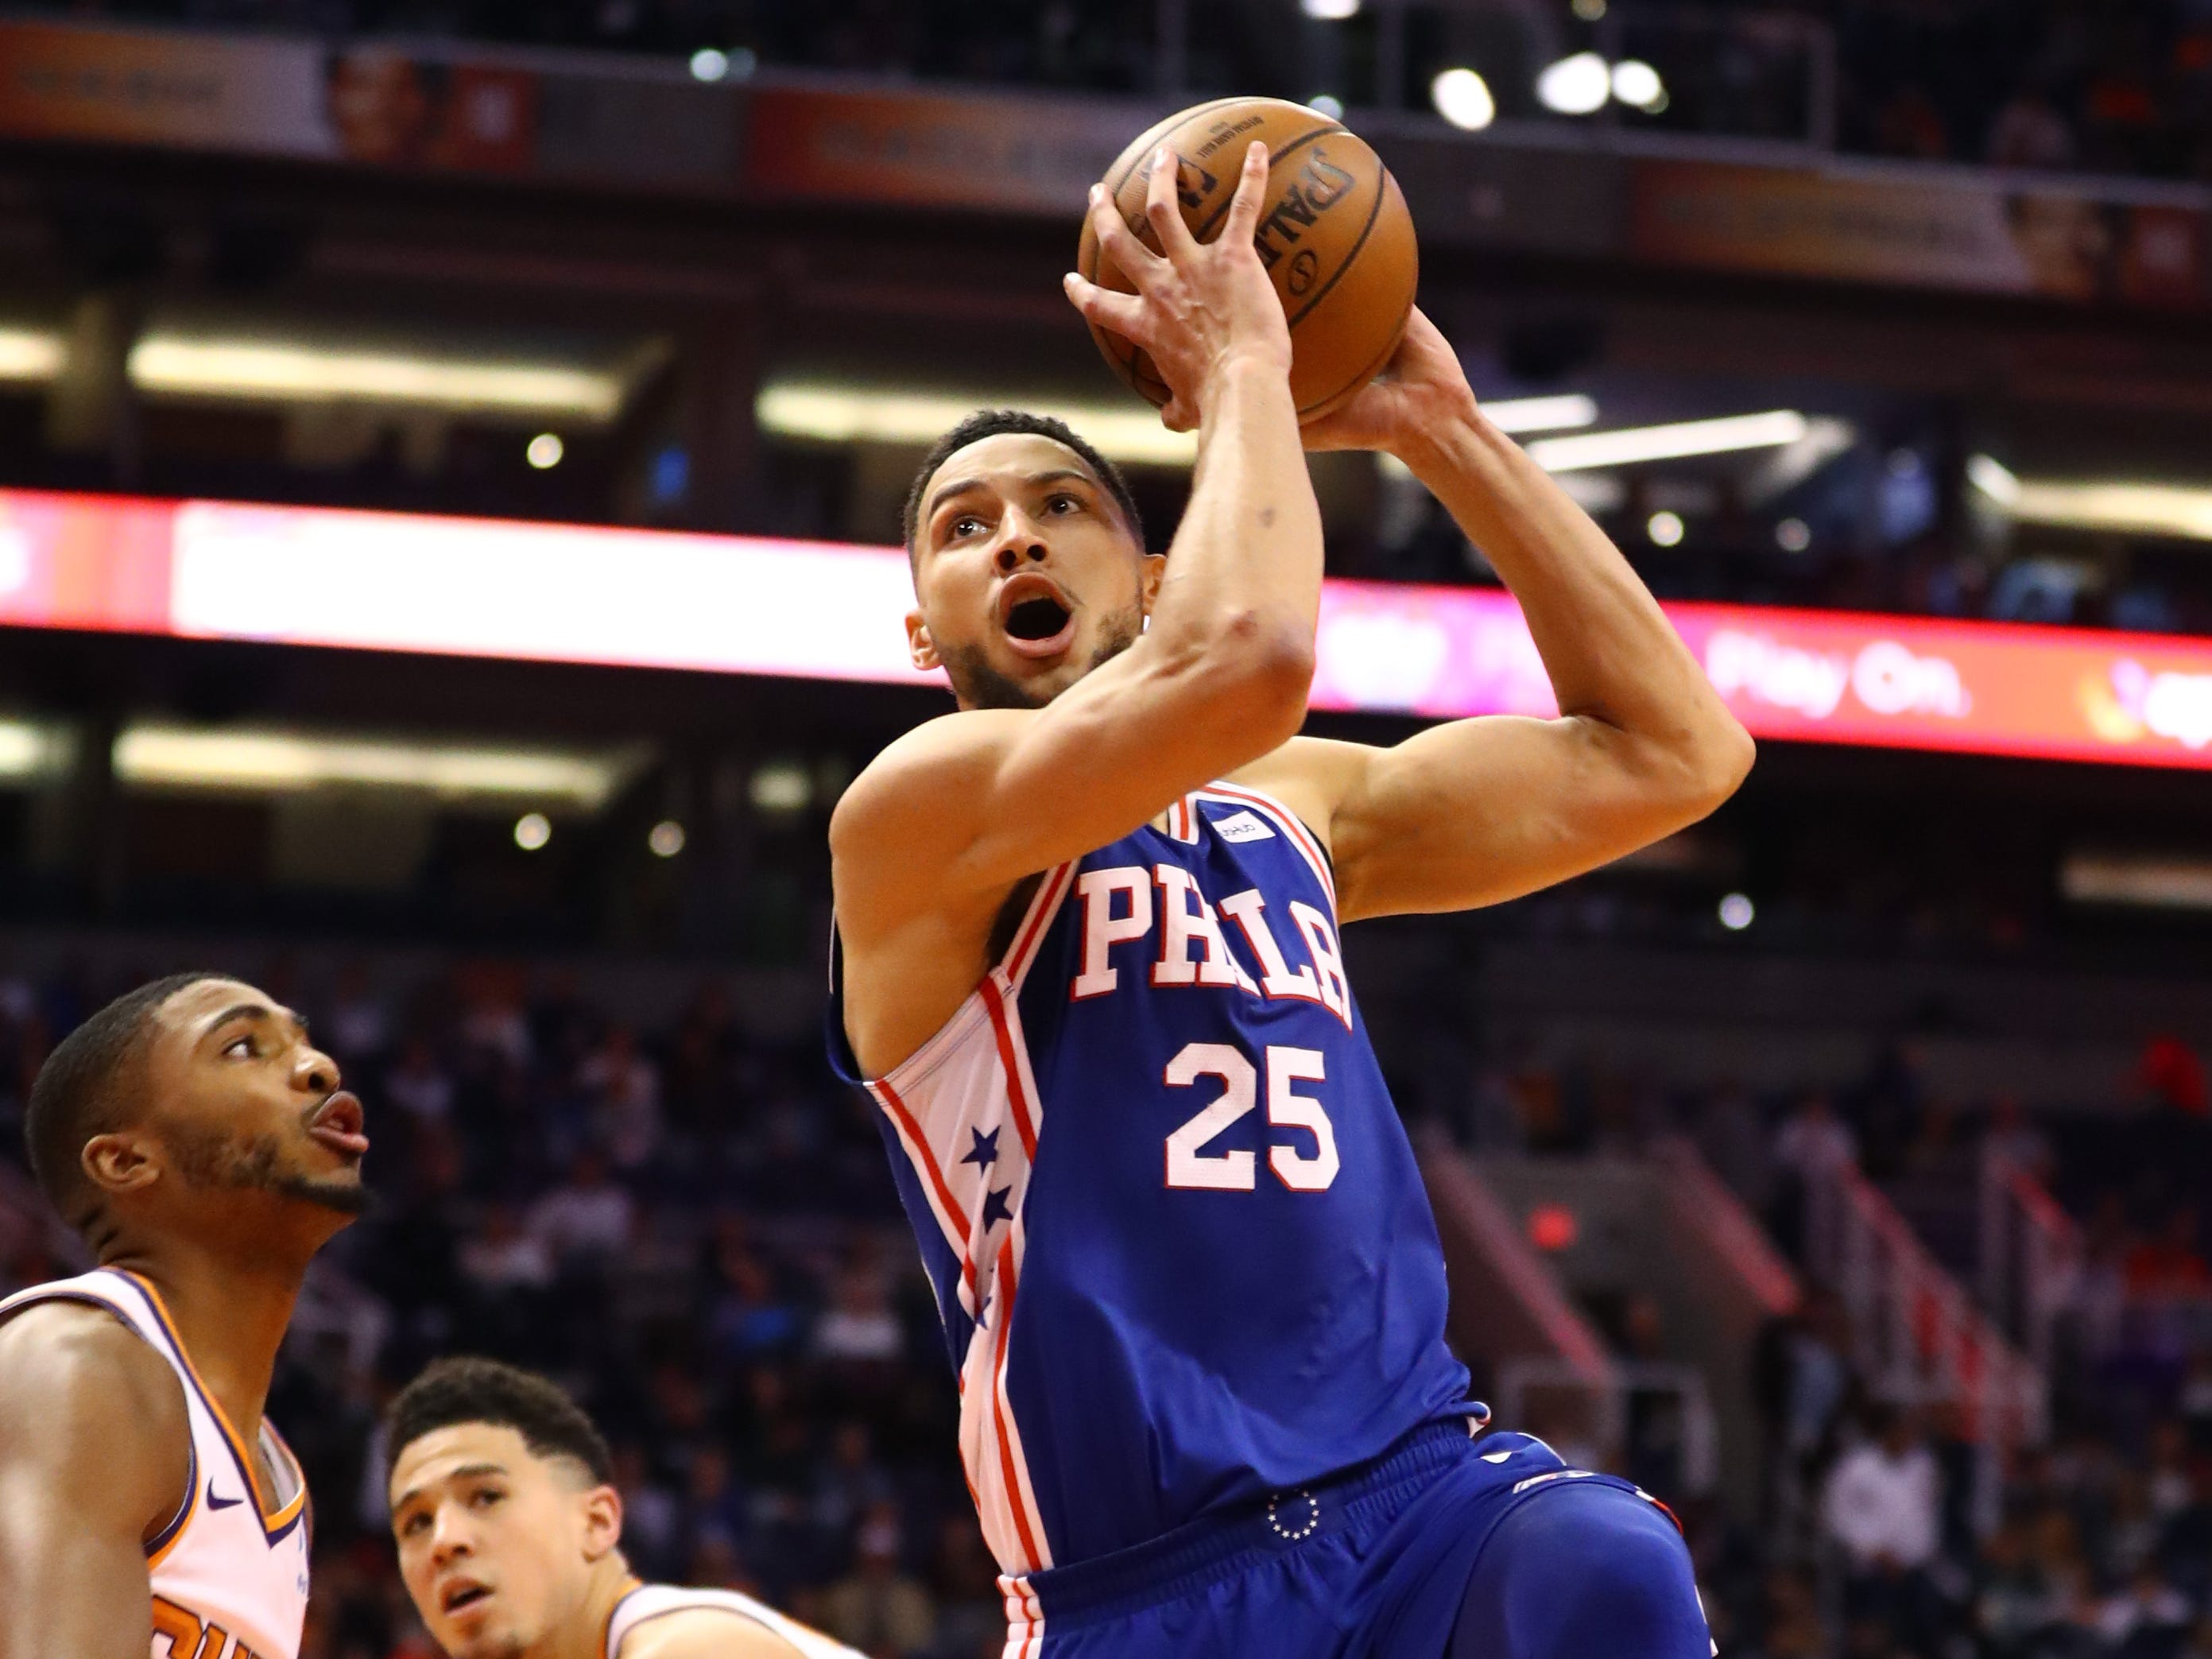 Jan 2, 2019; Phoenix, AZ, USA; Philadelphia 76ers guard Ben Simmons (25) drives to the basket against the Phoenix Suns in the second half at Talking Stick Resort Arena. Mandatory Credit: Mark J. Rebilas-USA TODAY Sports